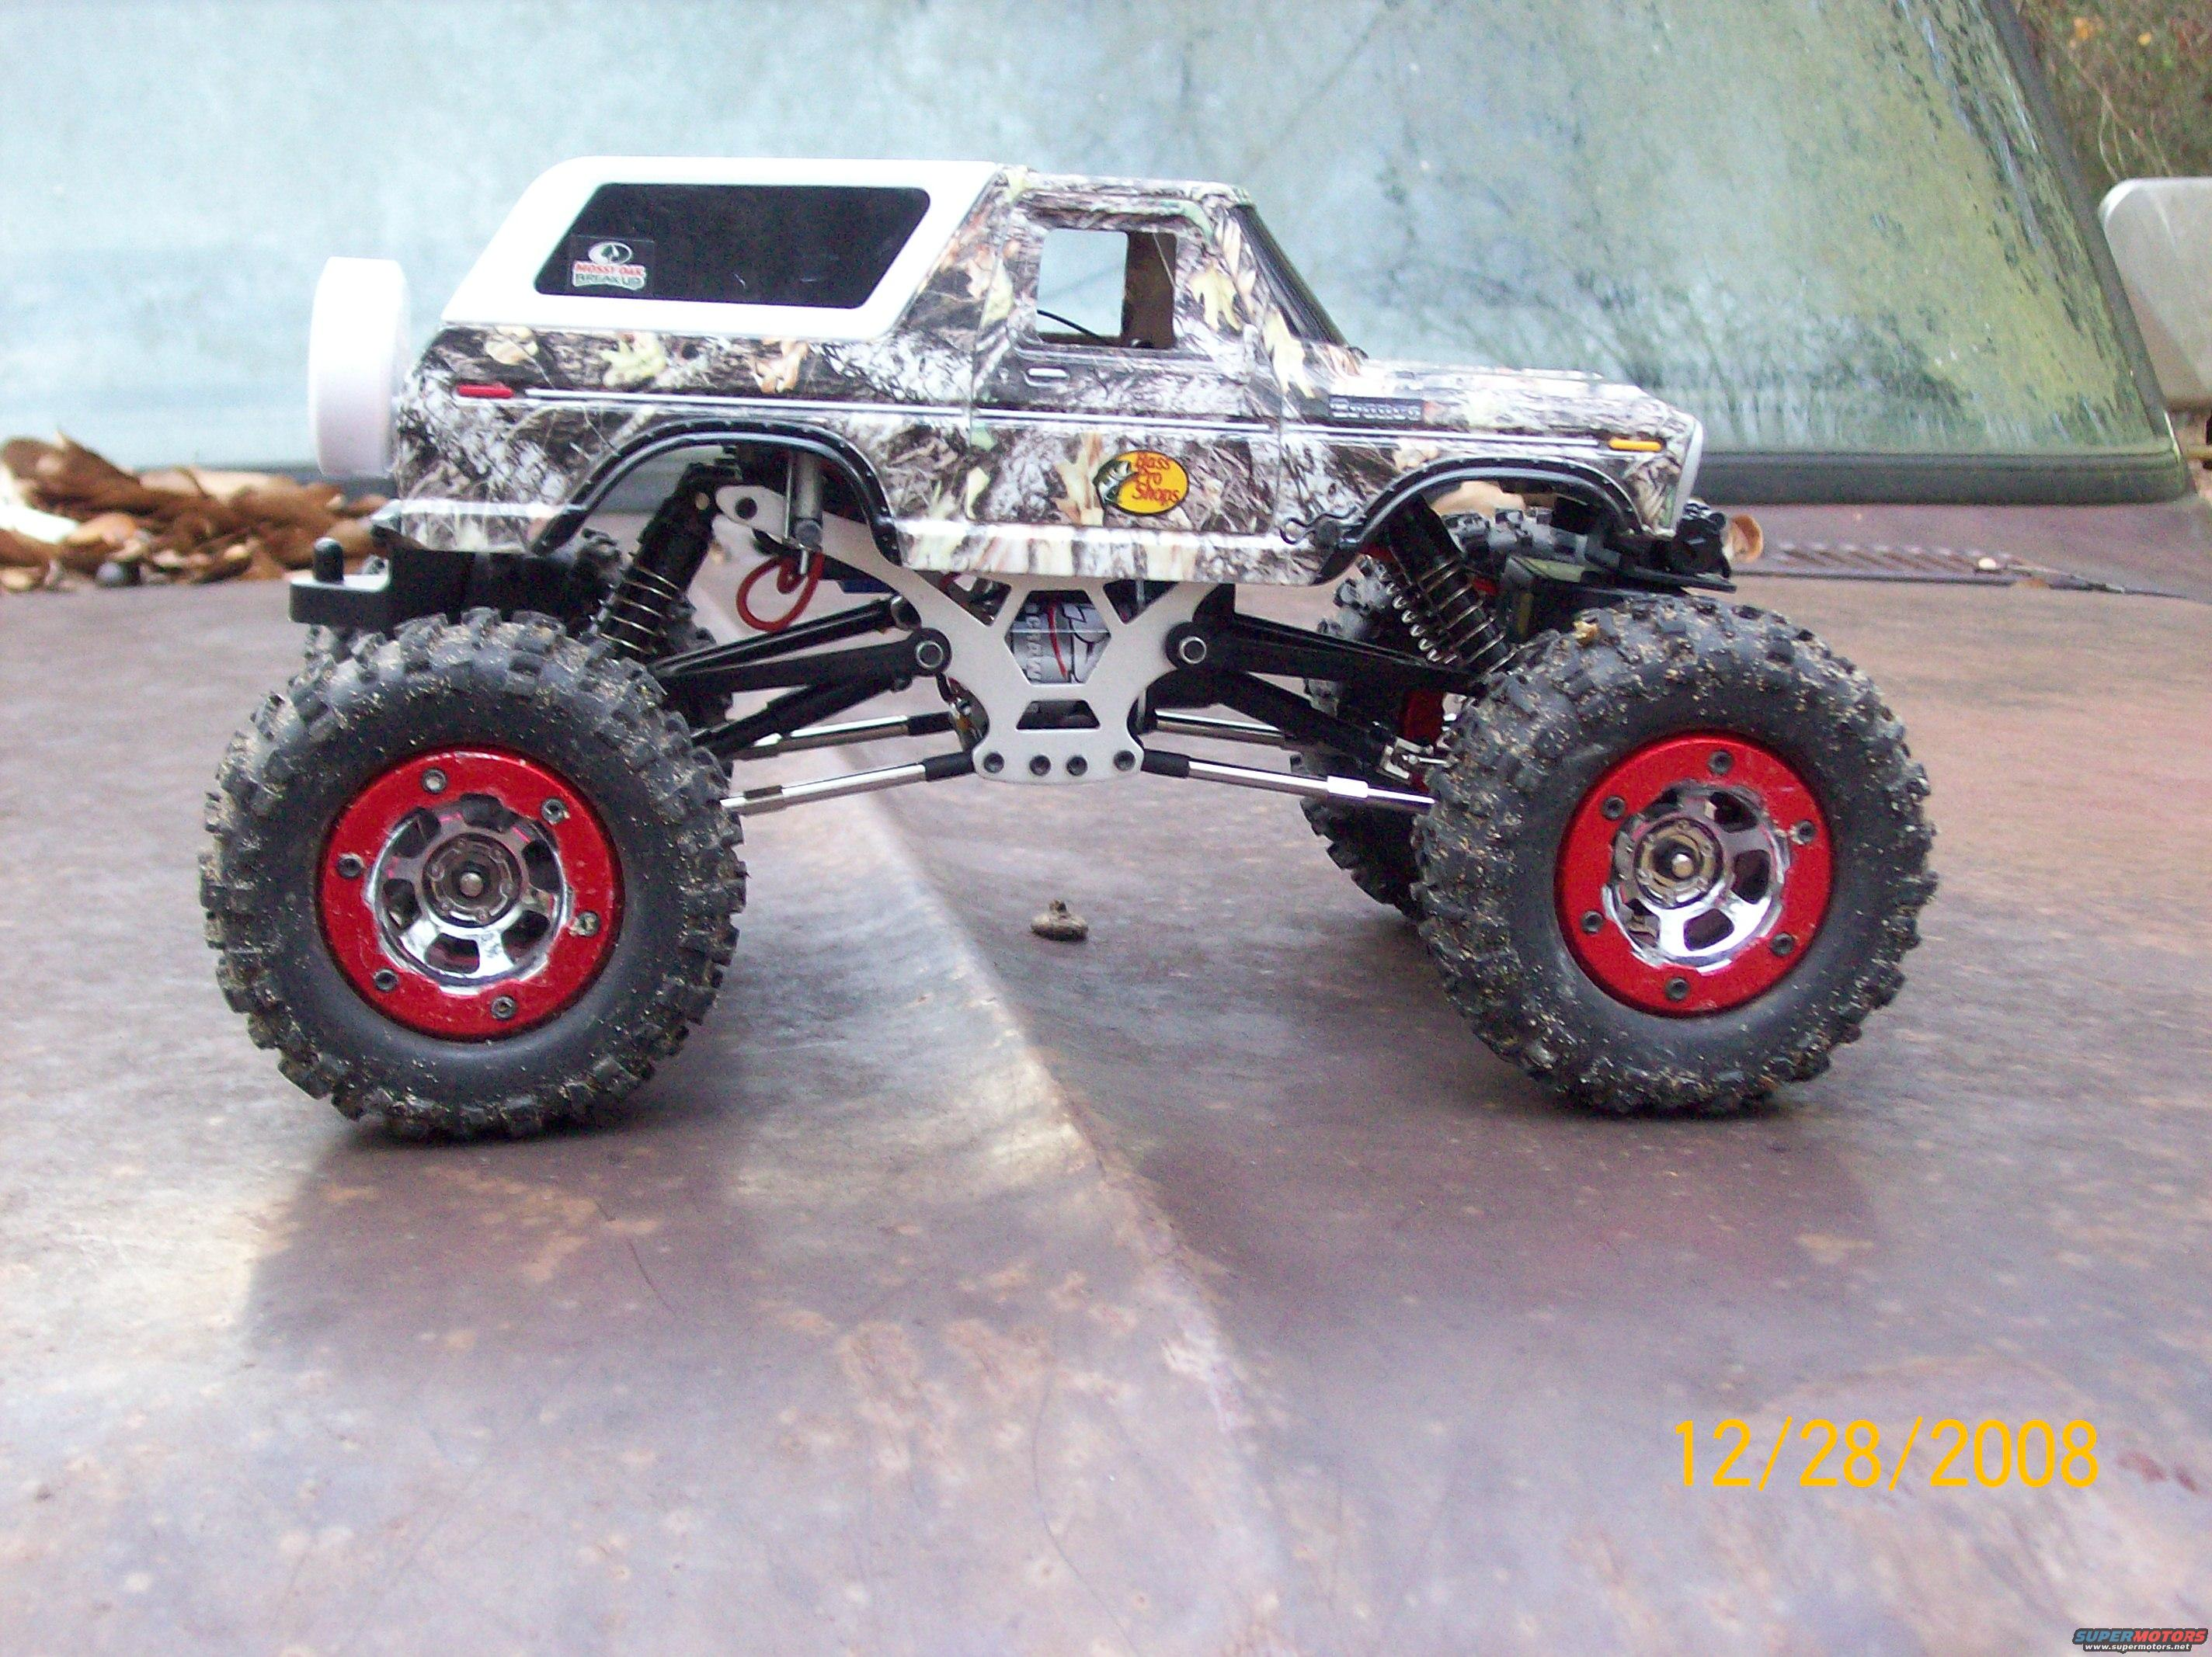 Ranger Ford 2018 >> 1978 Ford Bronco RC Bronco Rock Crawler picture | SuperMotors.net